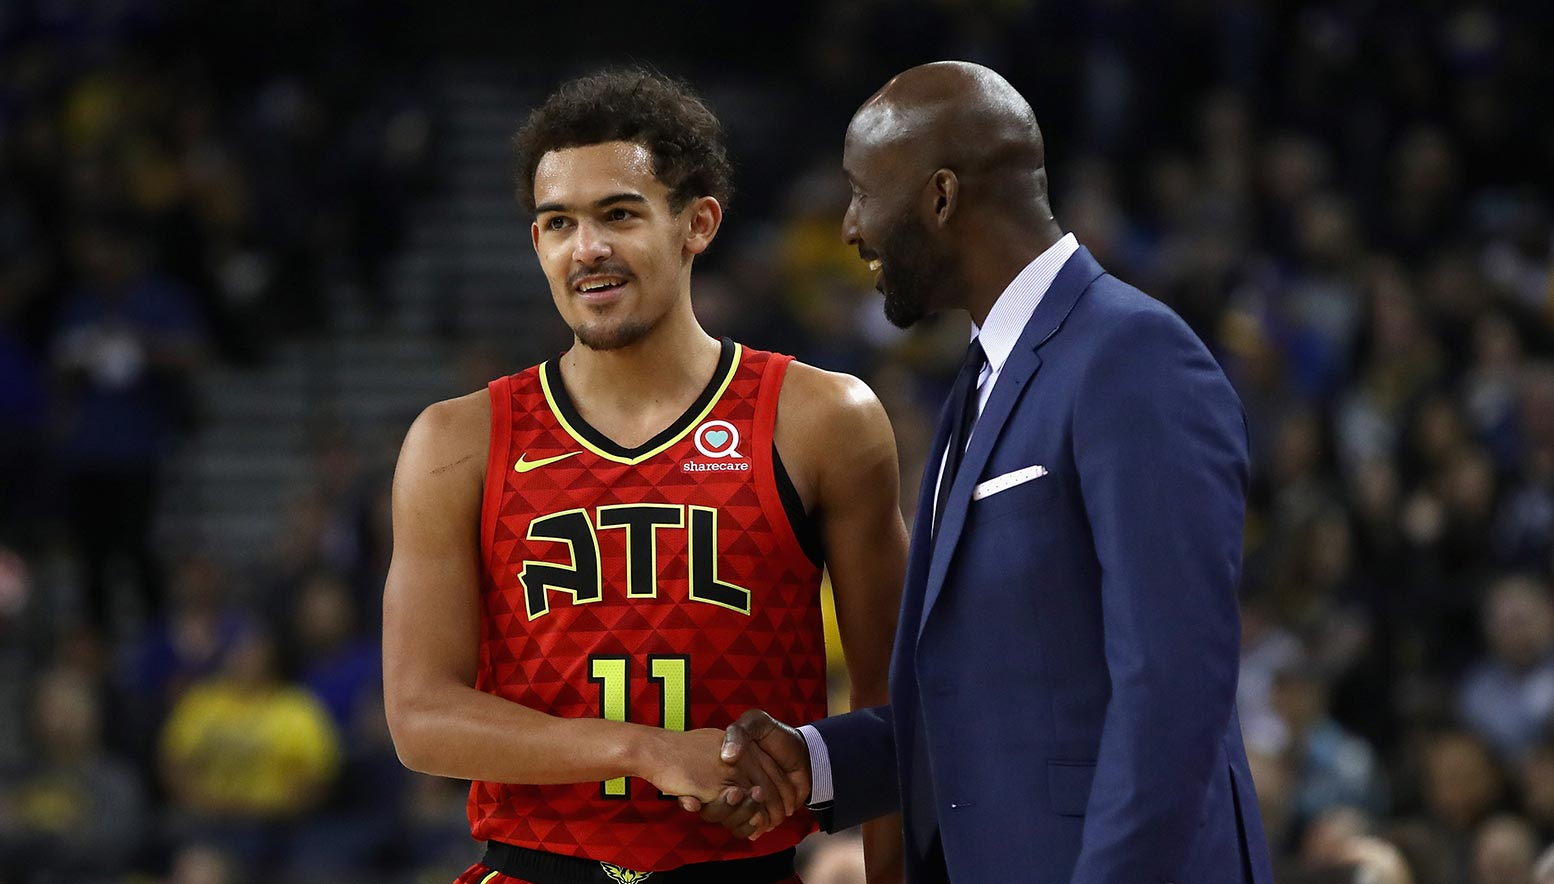 Trae Young shakes hands with Lloyd Pierce